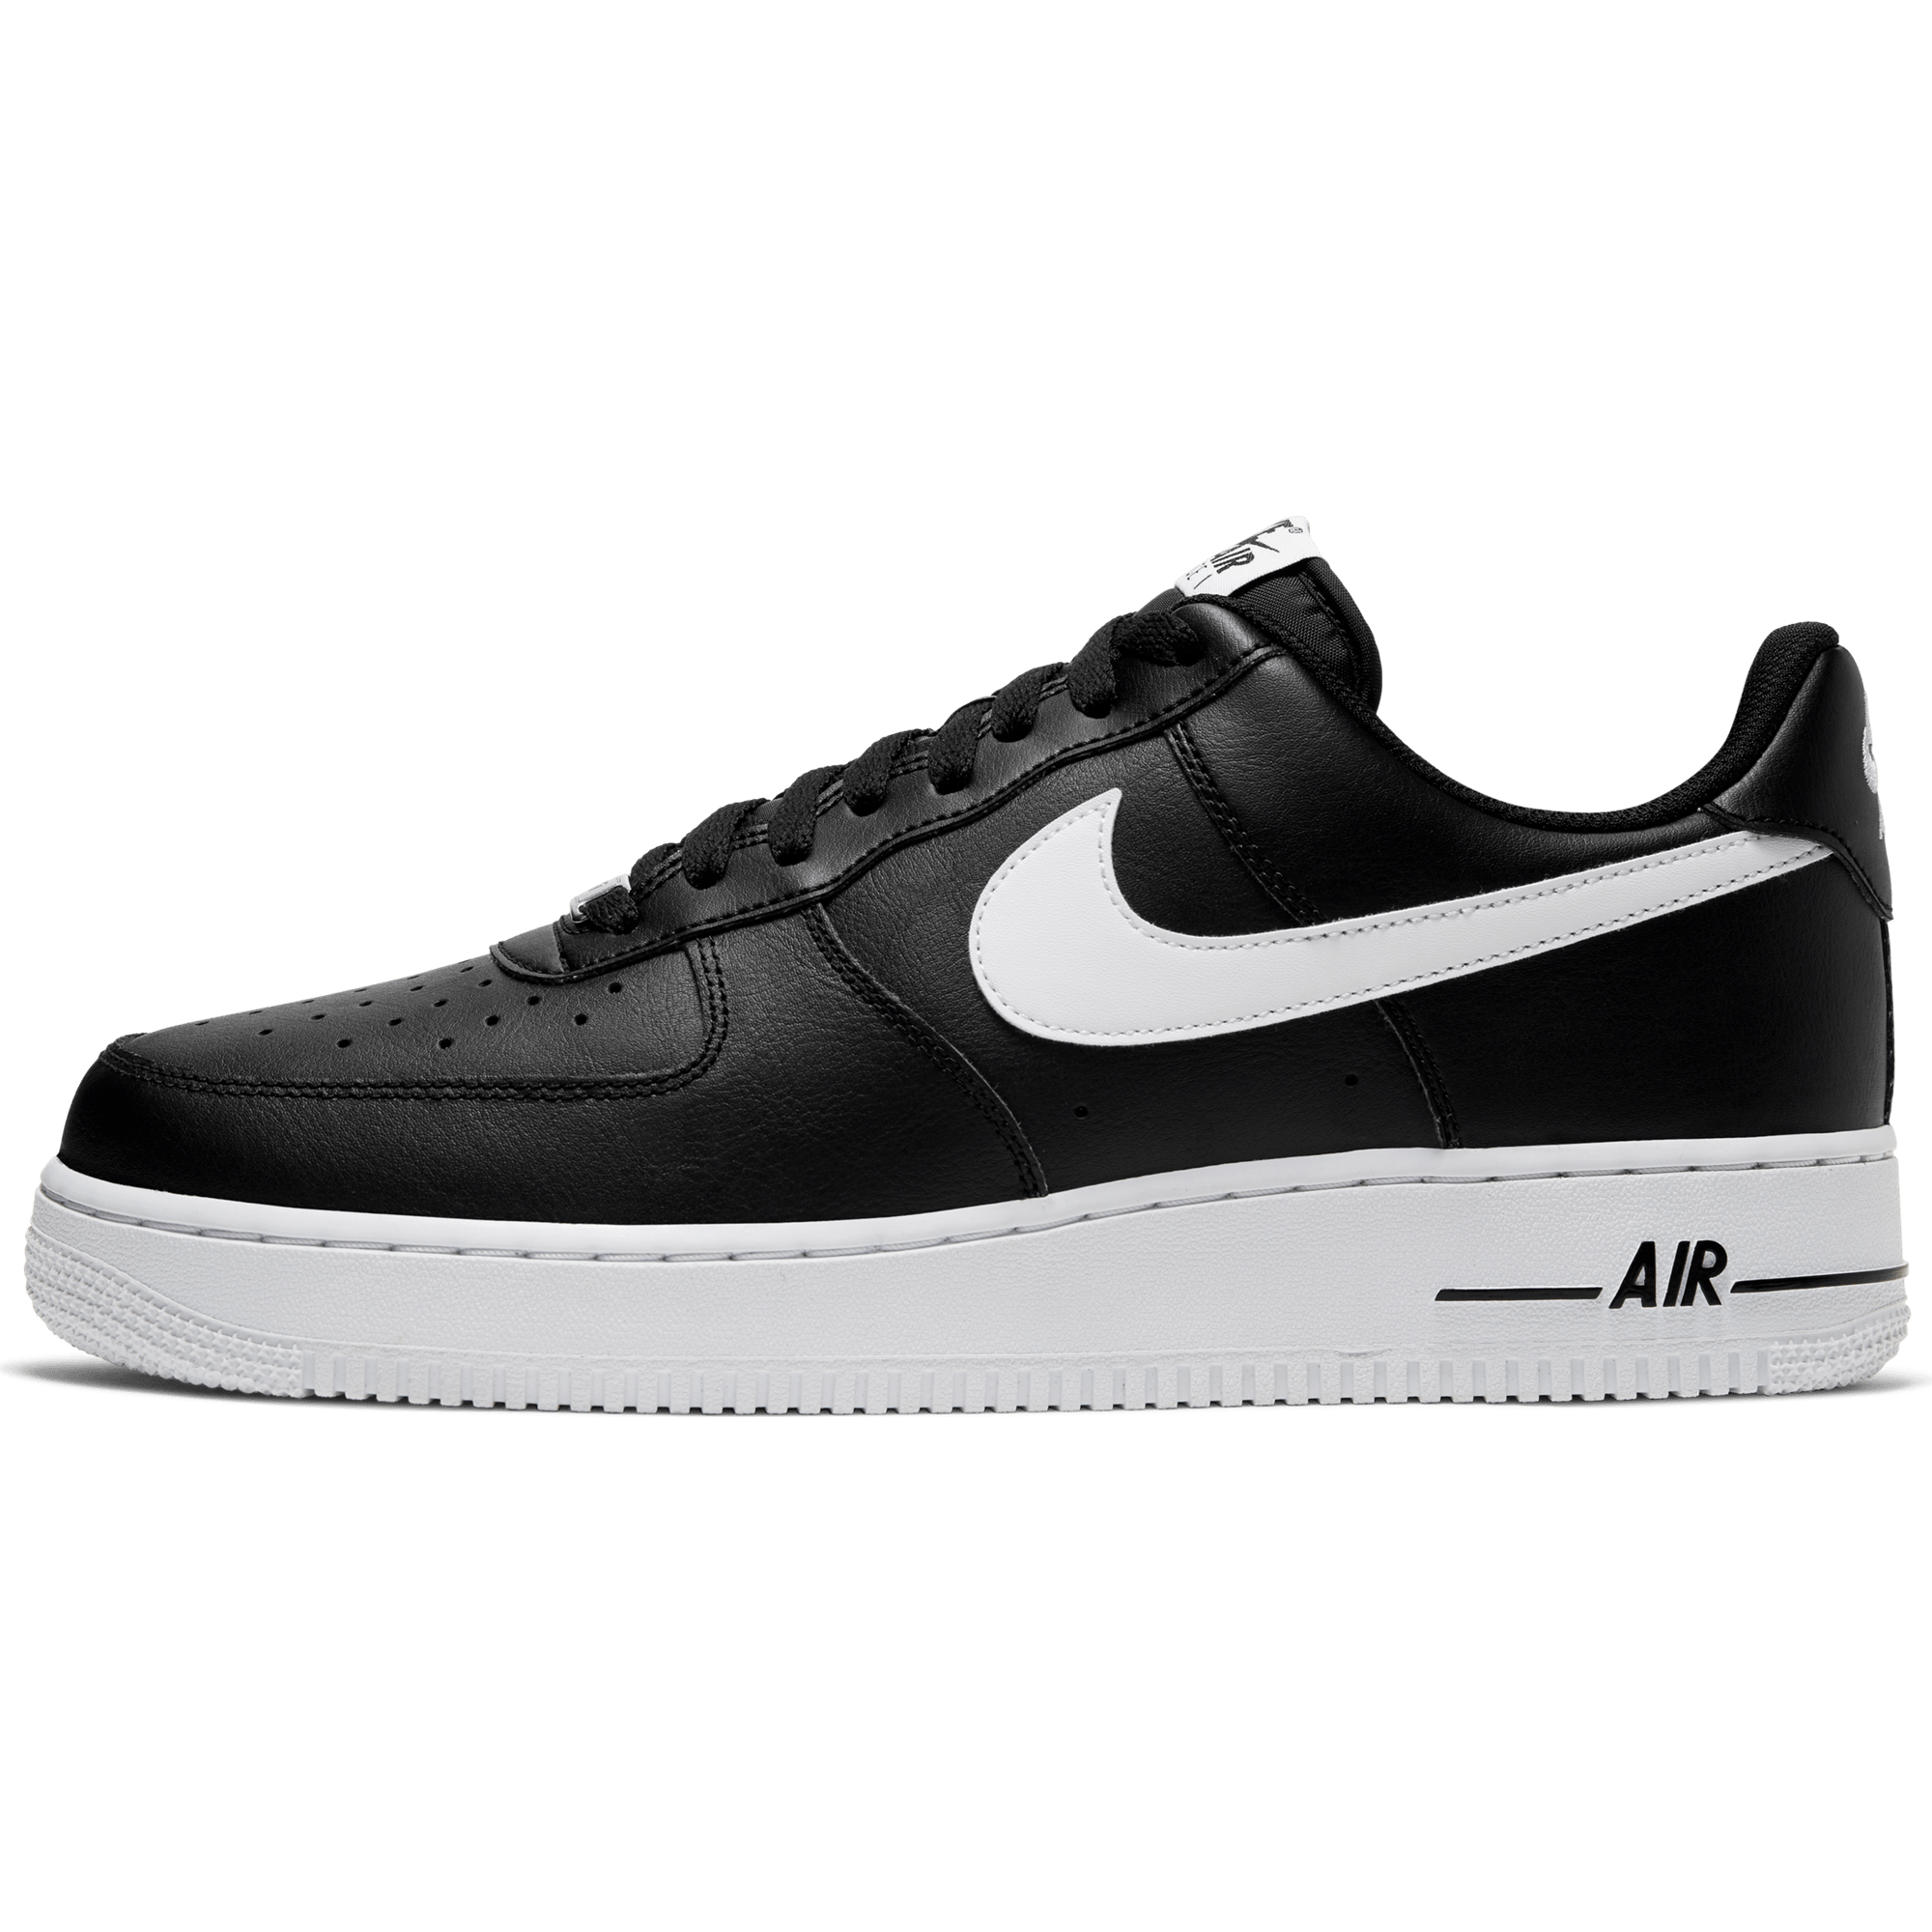 Nike FOOTWEAR Nike Air Force 1 '07 - Men's